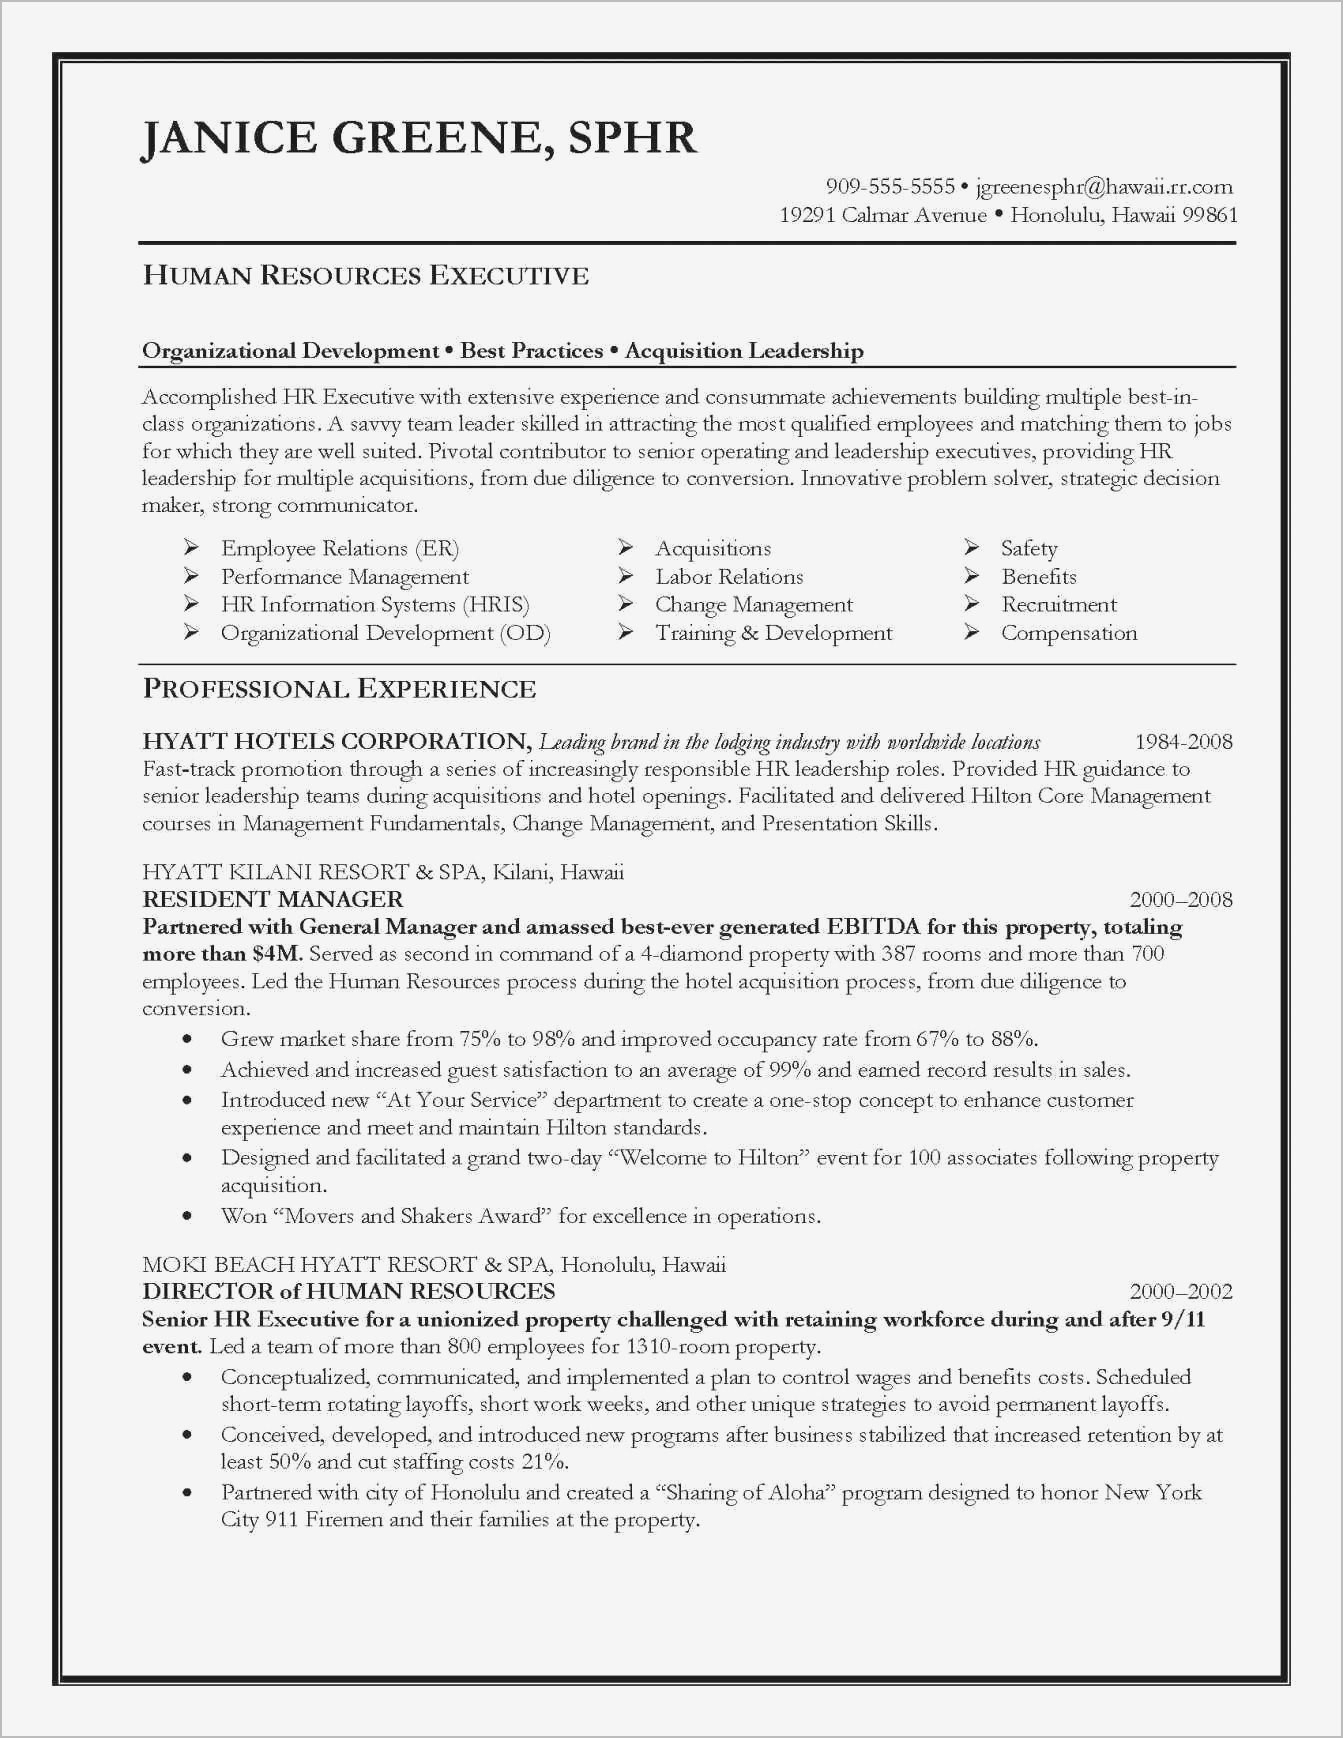 Resume Writing Tips 2018 - top Resume Writing Services Reviews Reference Best Resume Writing